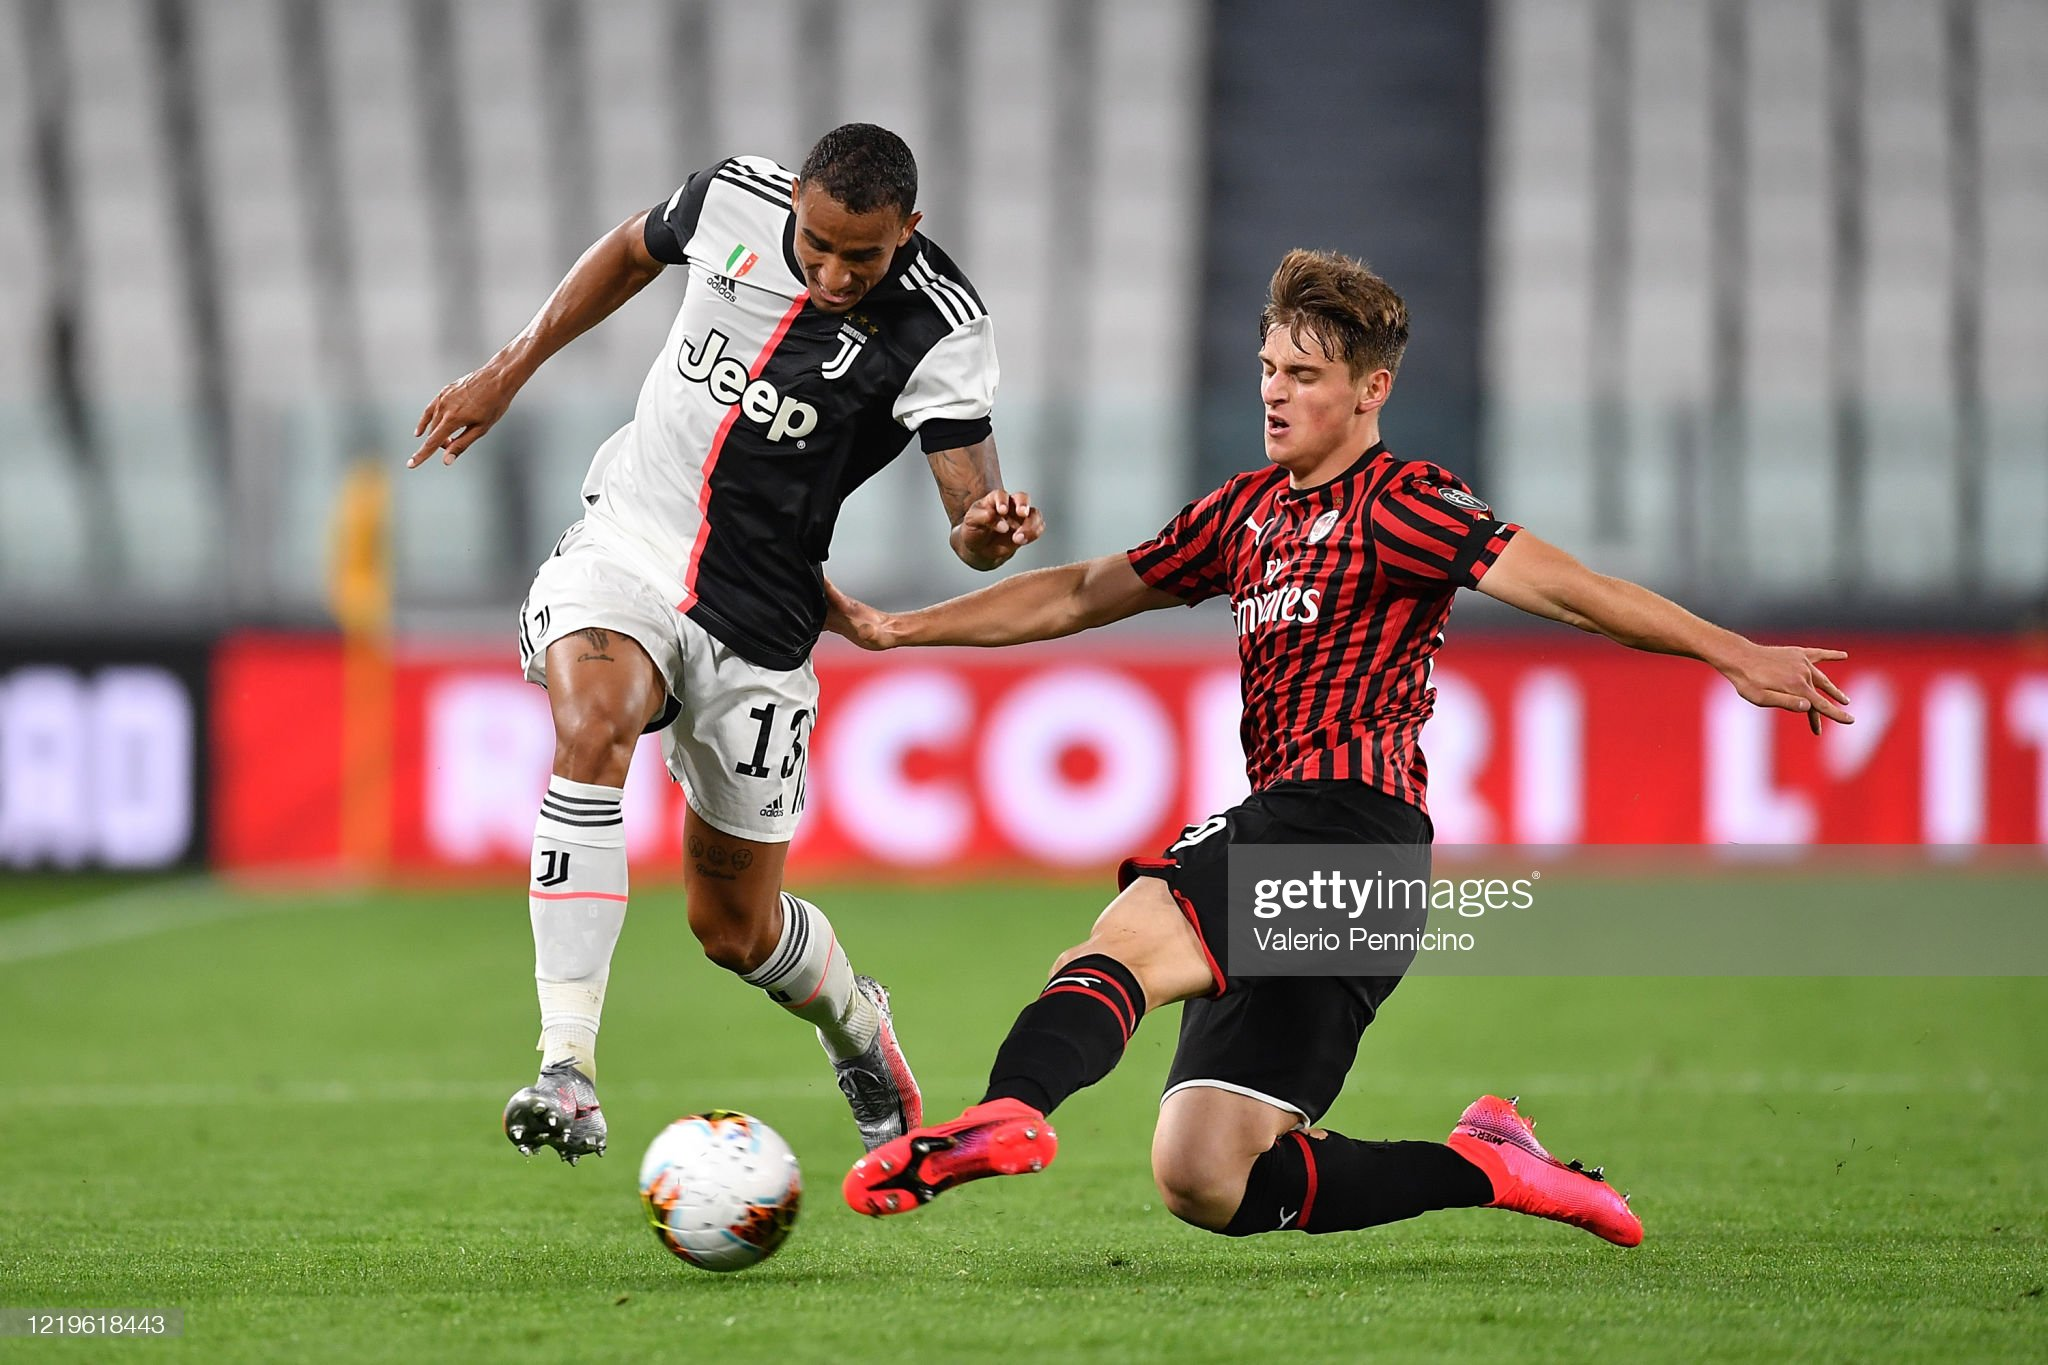 AC Milan vs Juventus Preview, prediction and odds